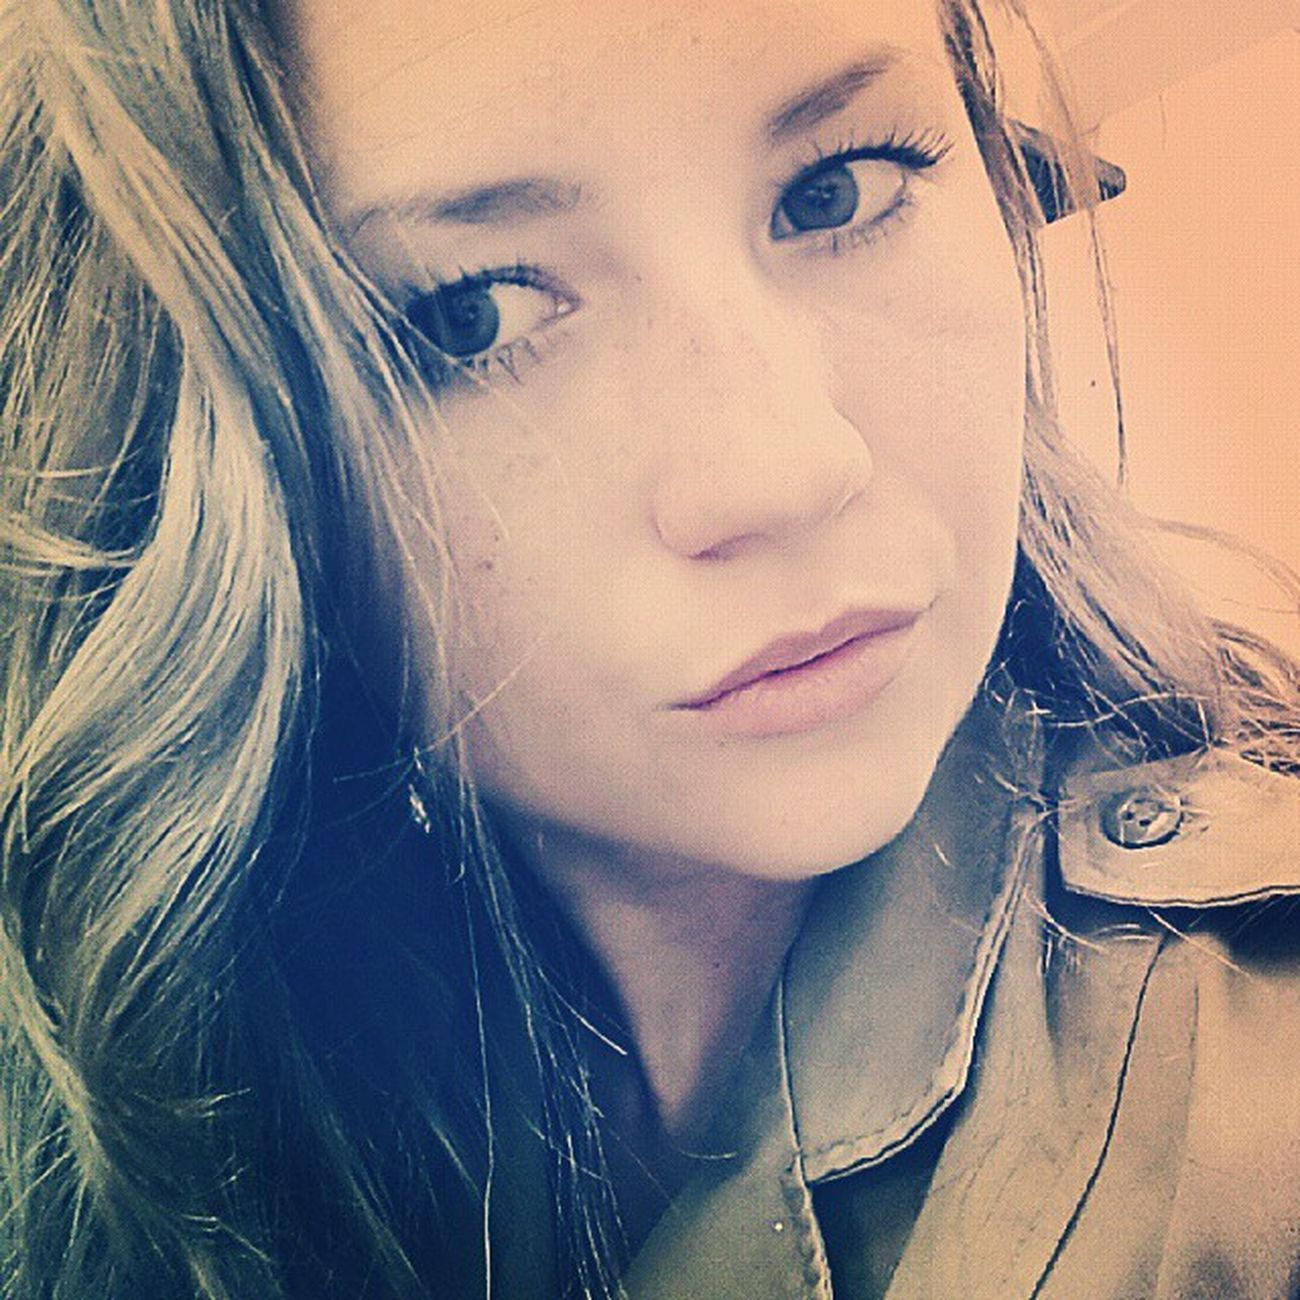 Russiangirlsss_ Russian Iloveidf Israeligirls army love cute pretty green Good day from IDF✌